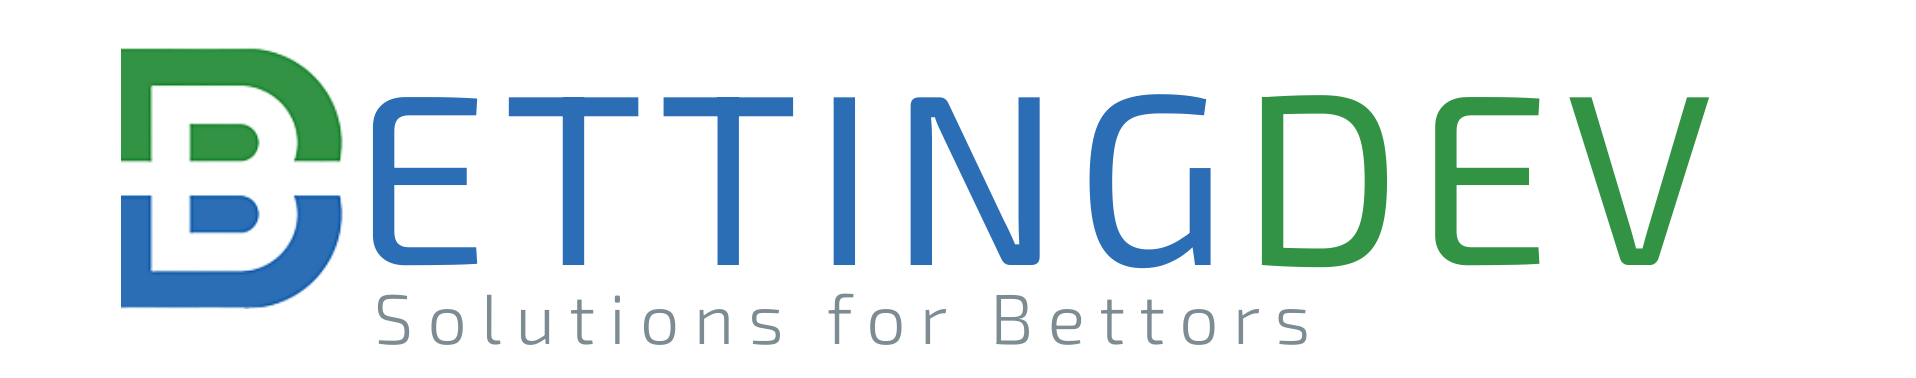 Bettingdev Logo